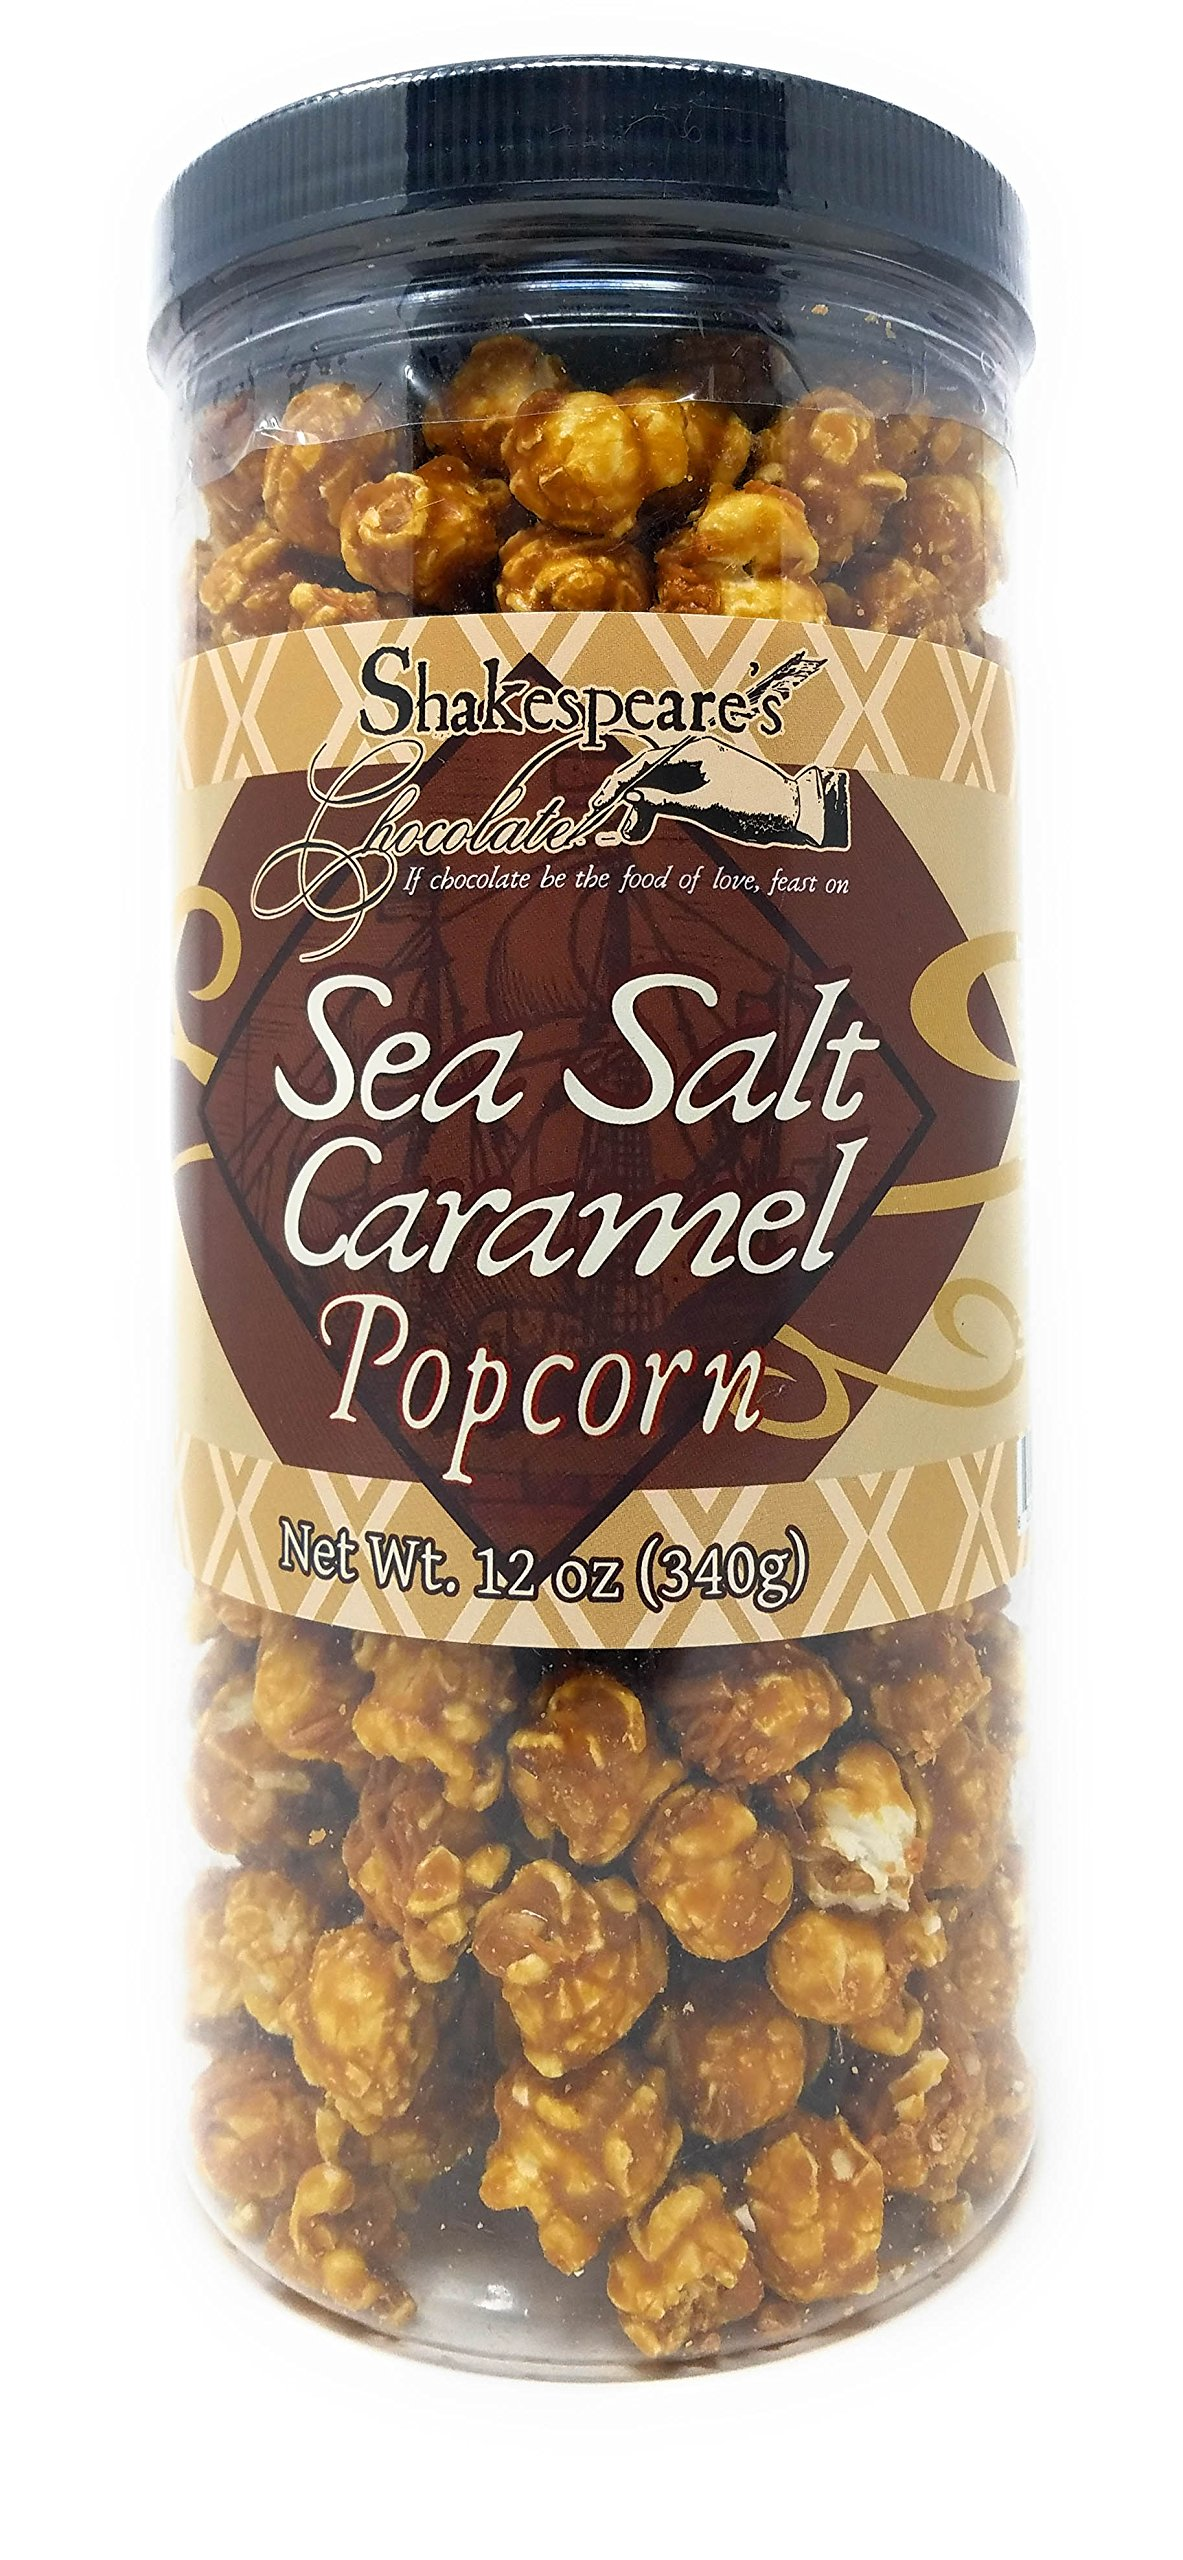 Flavored Popcorn Tub - Gourmet Flavored Popcorn for Parties, Movies, Snack Time - Enjoy Rich Gourmet Popcorn - Makes a Great Gift, Too! (Sea Salt & Caramel)